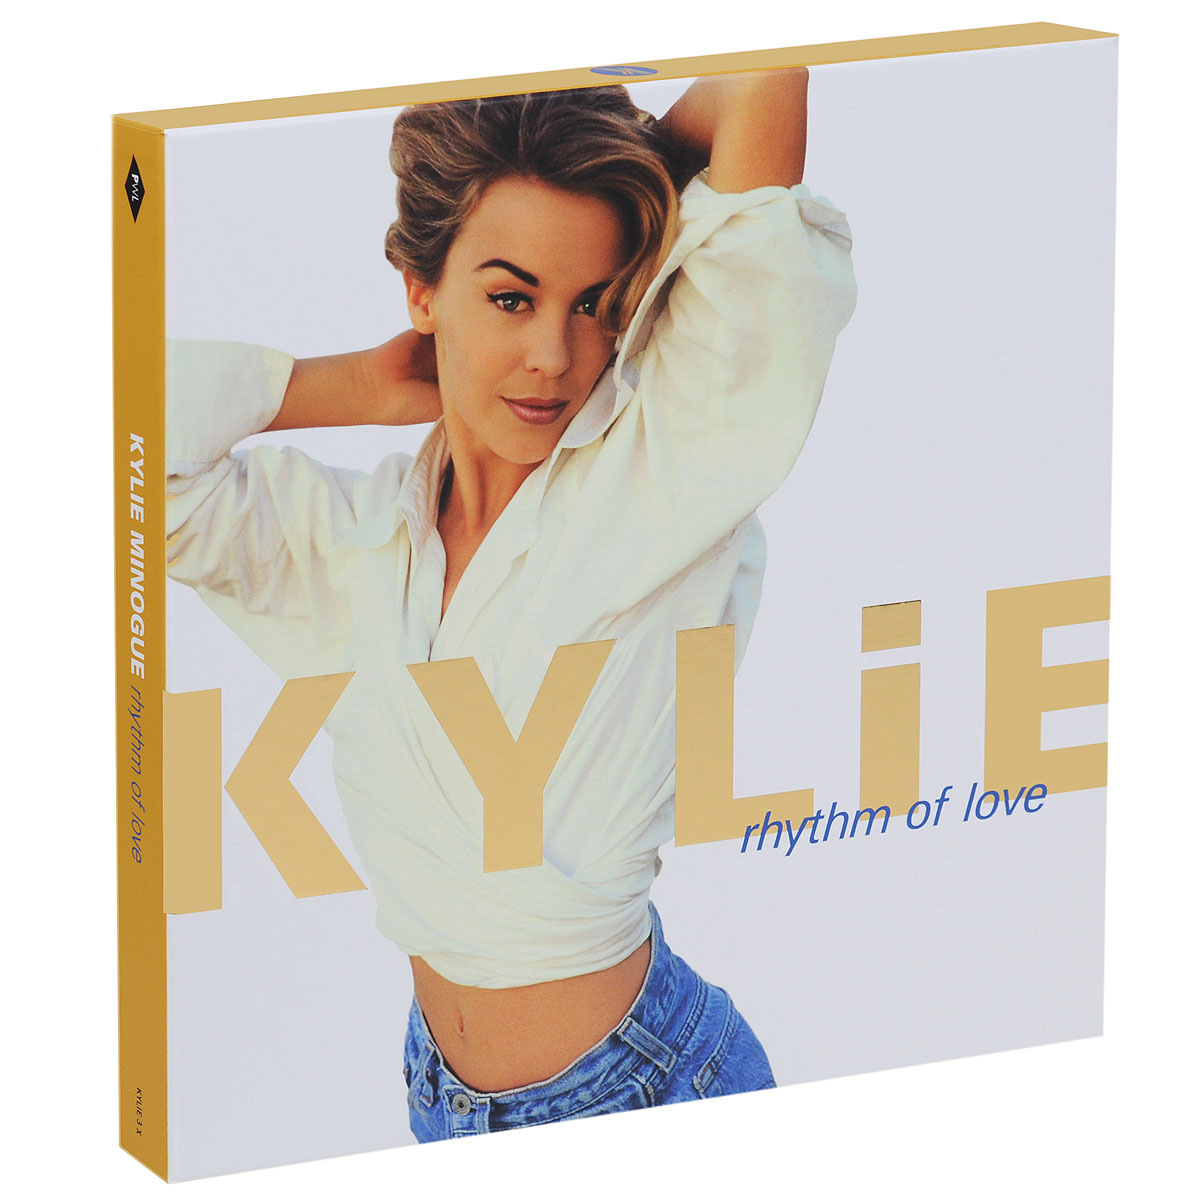 Кайли Миноуг Kylie Minogue. Rhythm Of Love (2 CD + DVD + LP) cd phil collins the essential going back